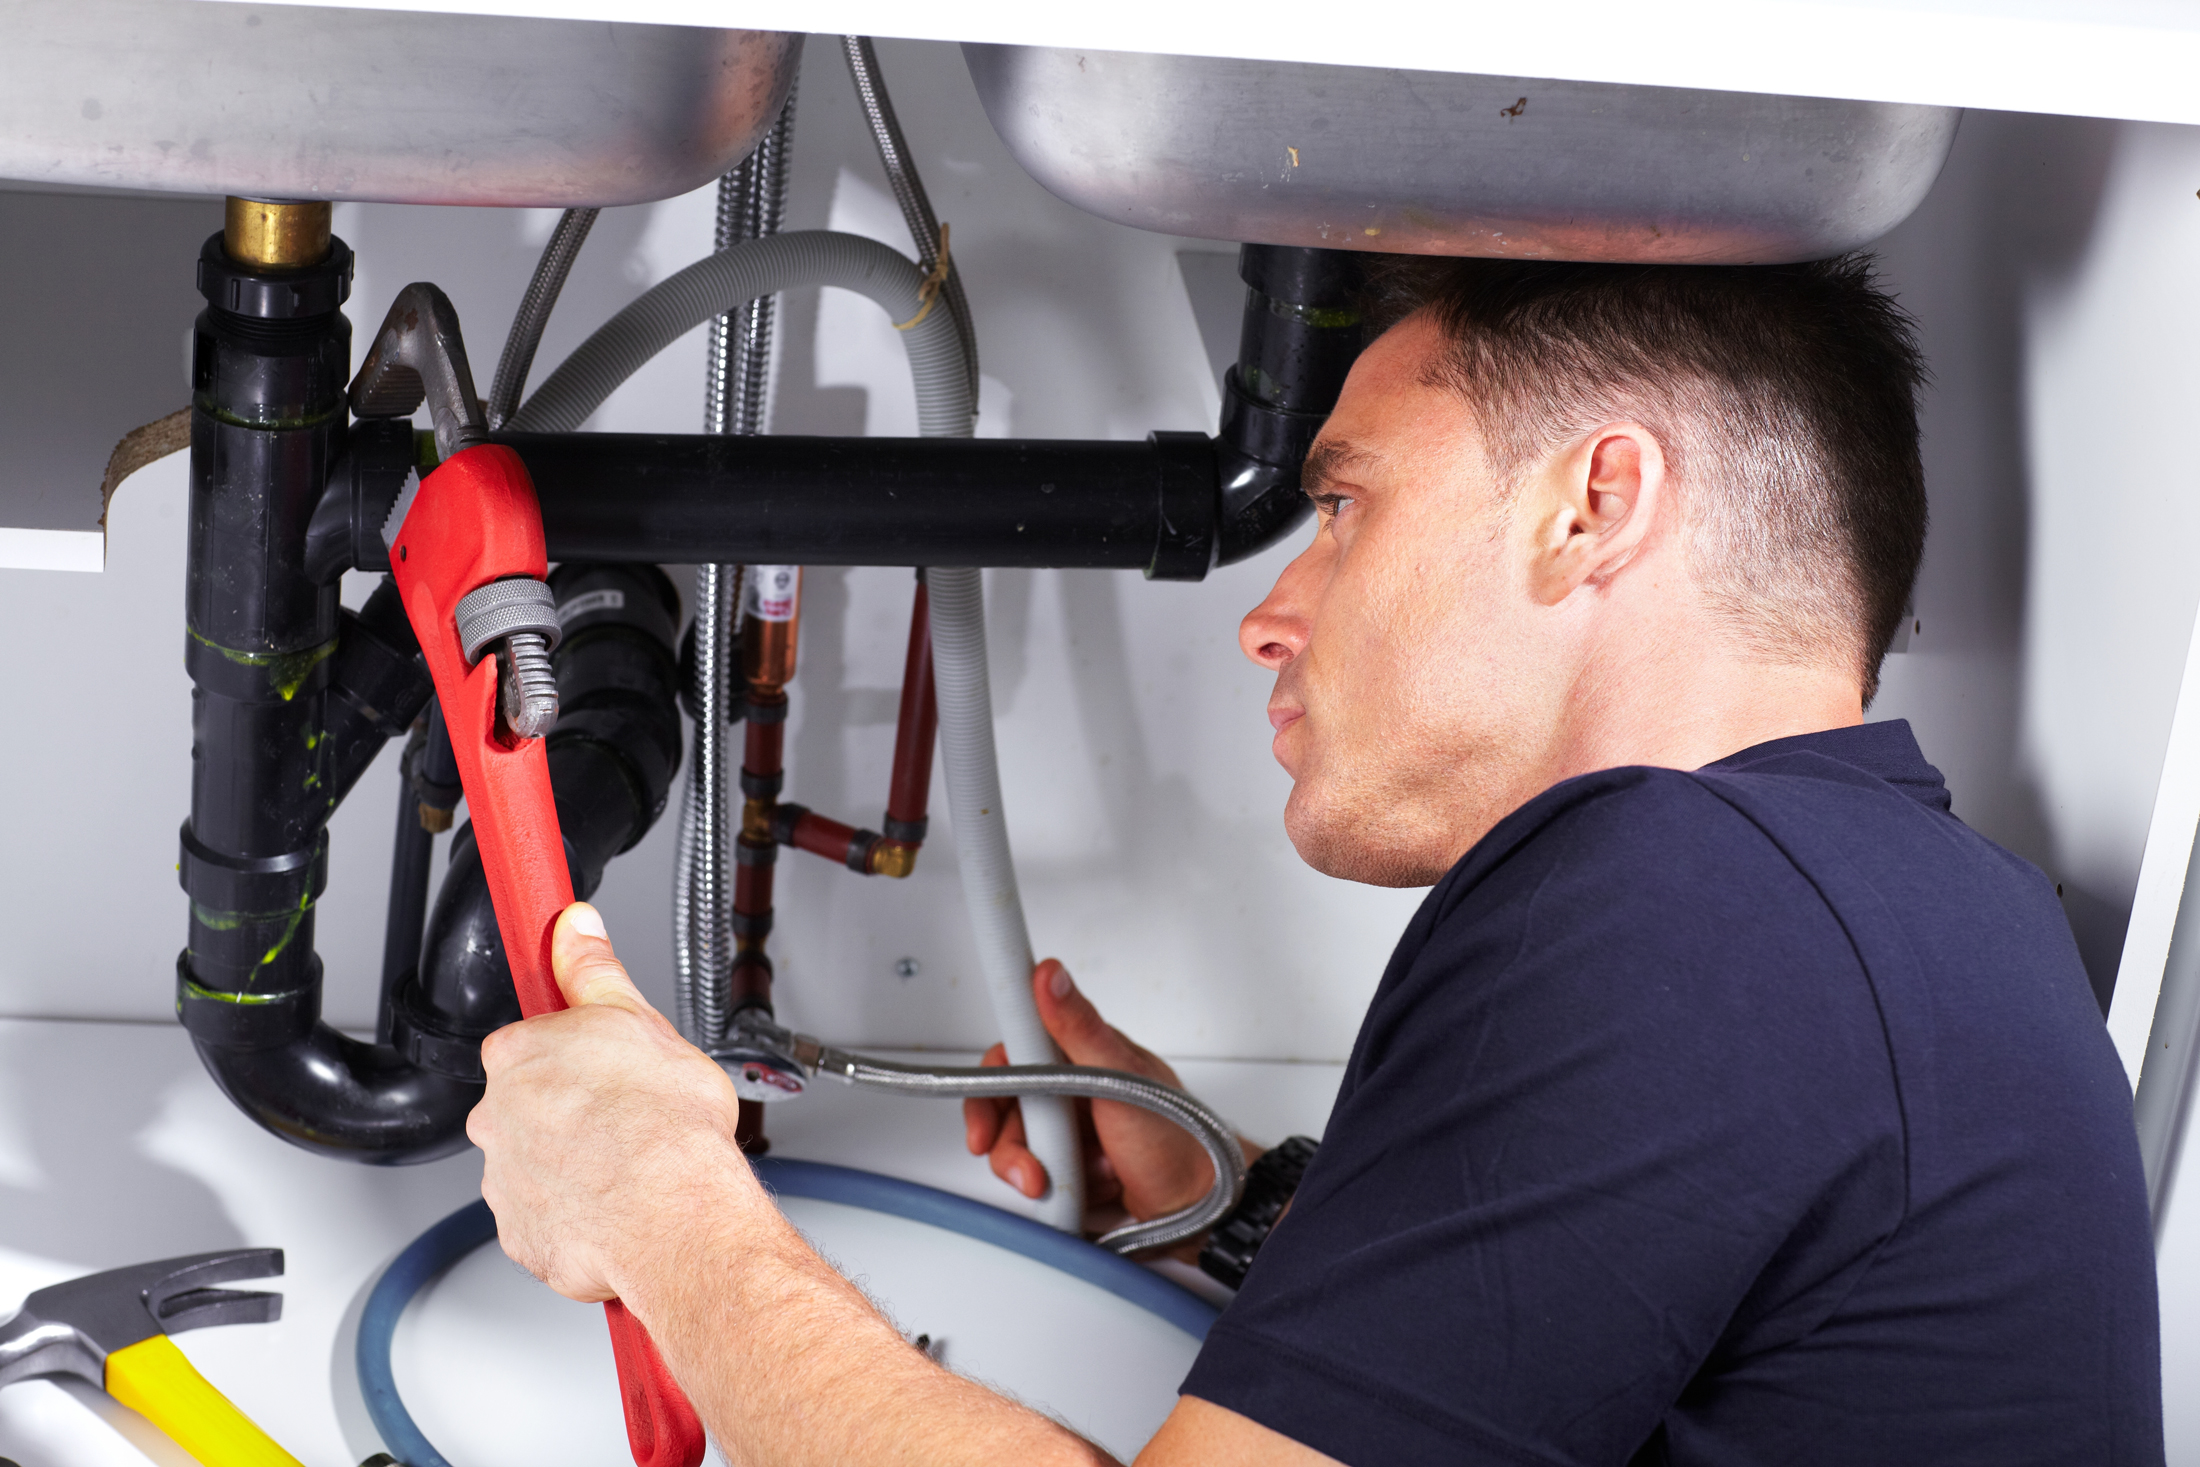 Commercial Plumbing Luckinbill Hvac Wiring Services Service Utility Contracting Electrical Mechanical Contractors Industrial Coatings Fire